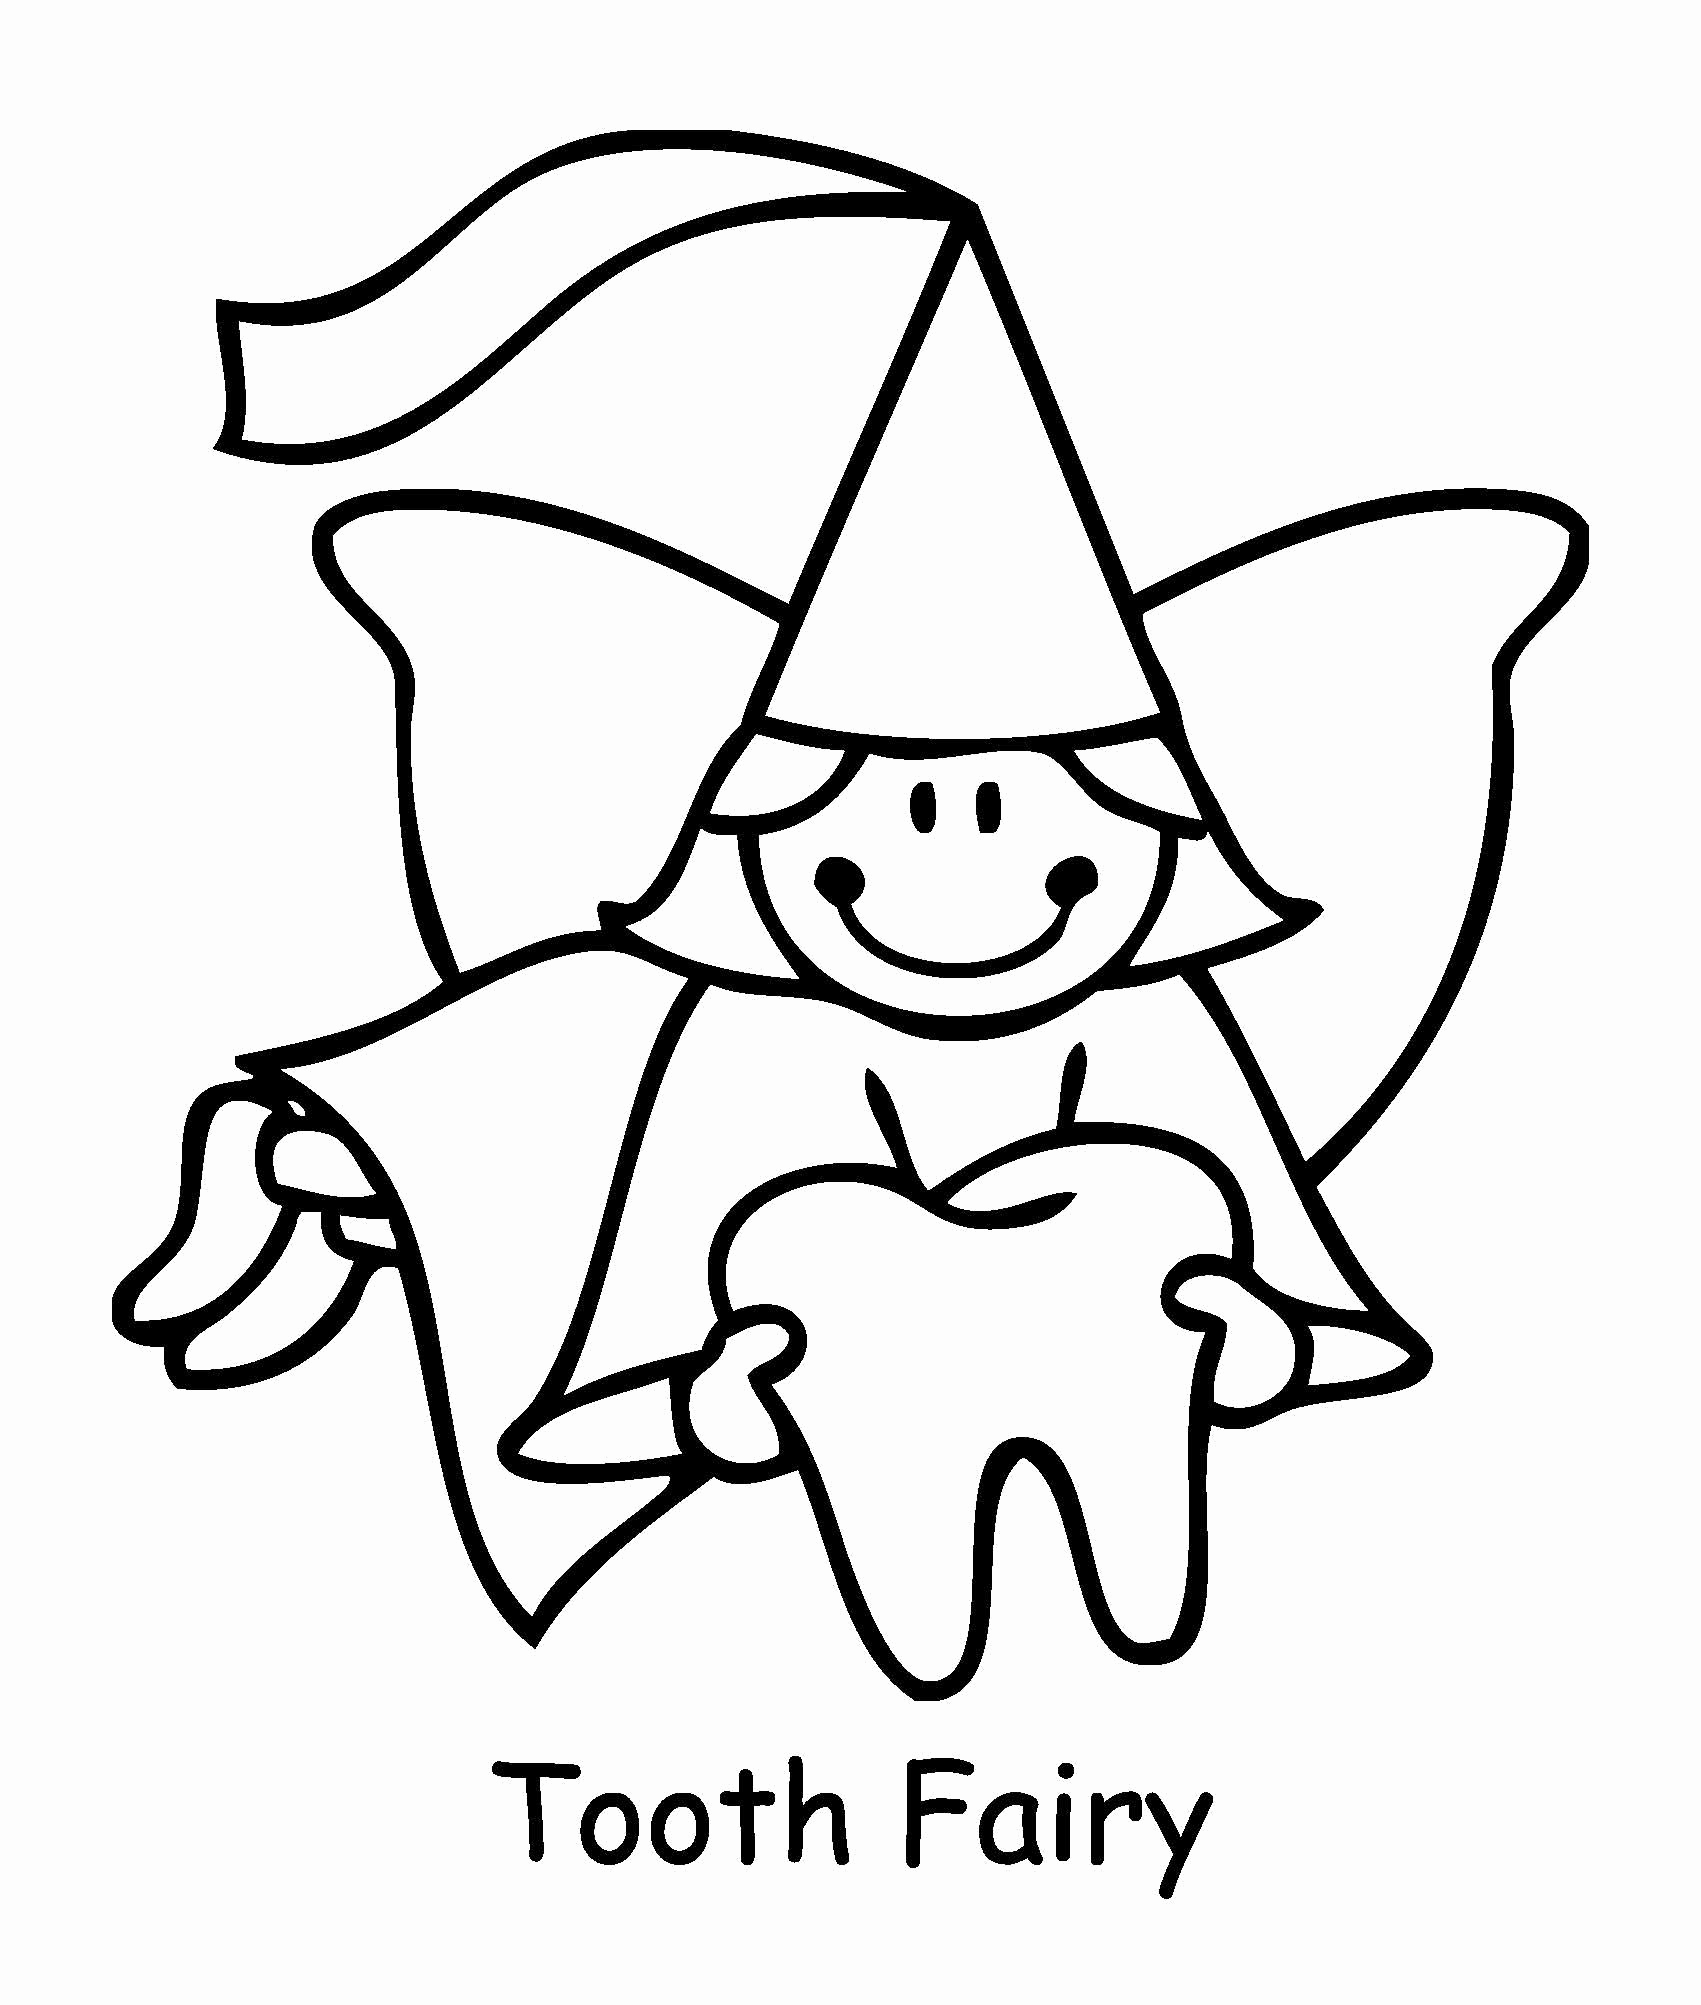 Pediatric Dental Coloring Pages Collection 9j - To print for your project